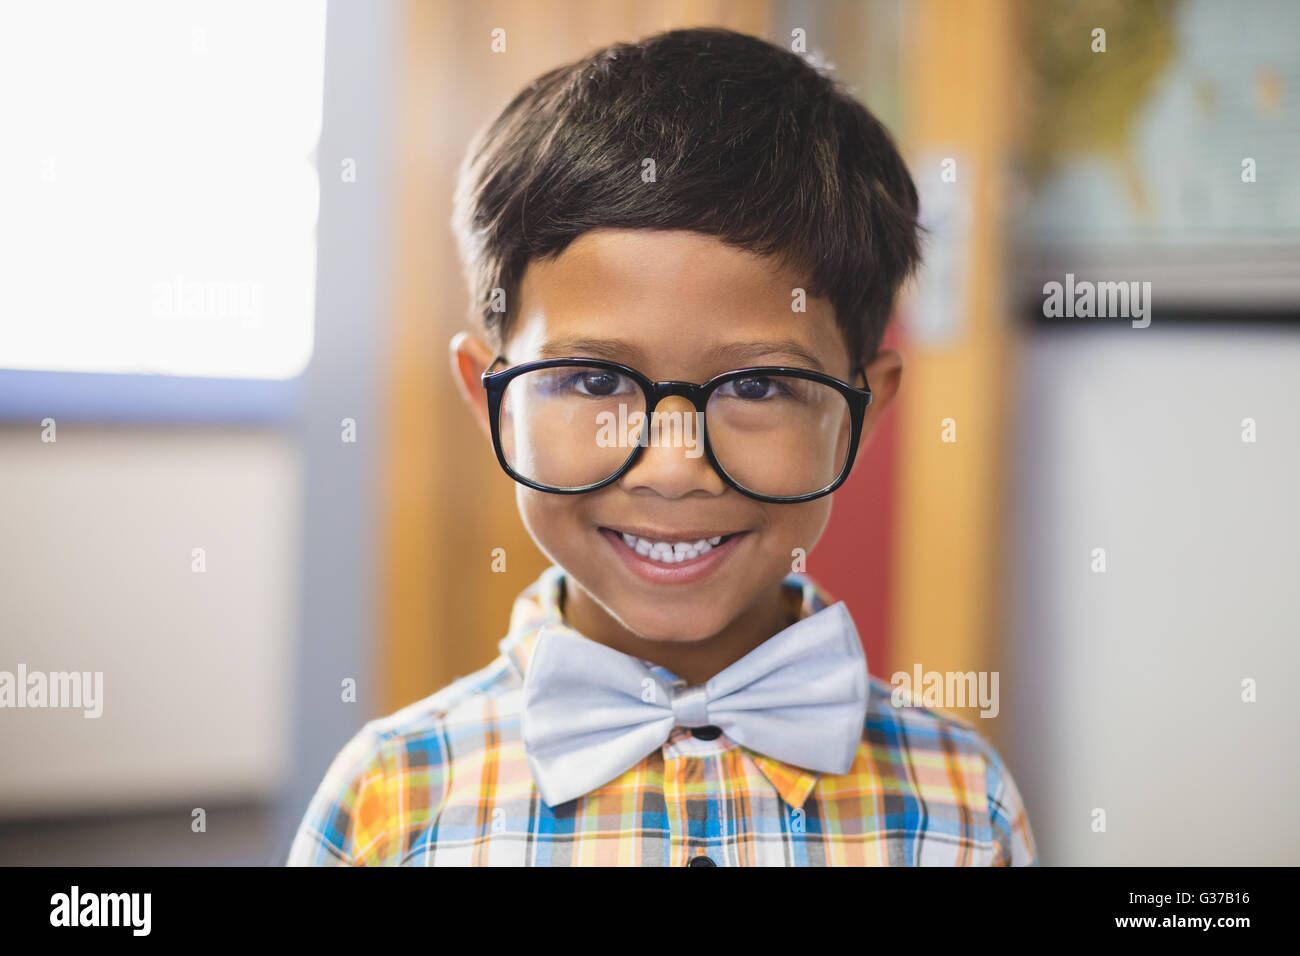 Portrait of smiling schoolboy in spectacle - Stock Image